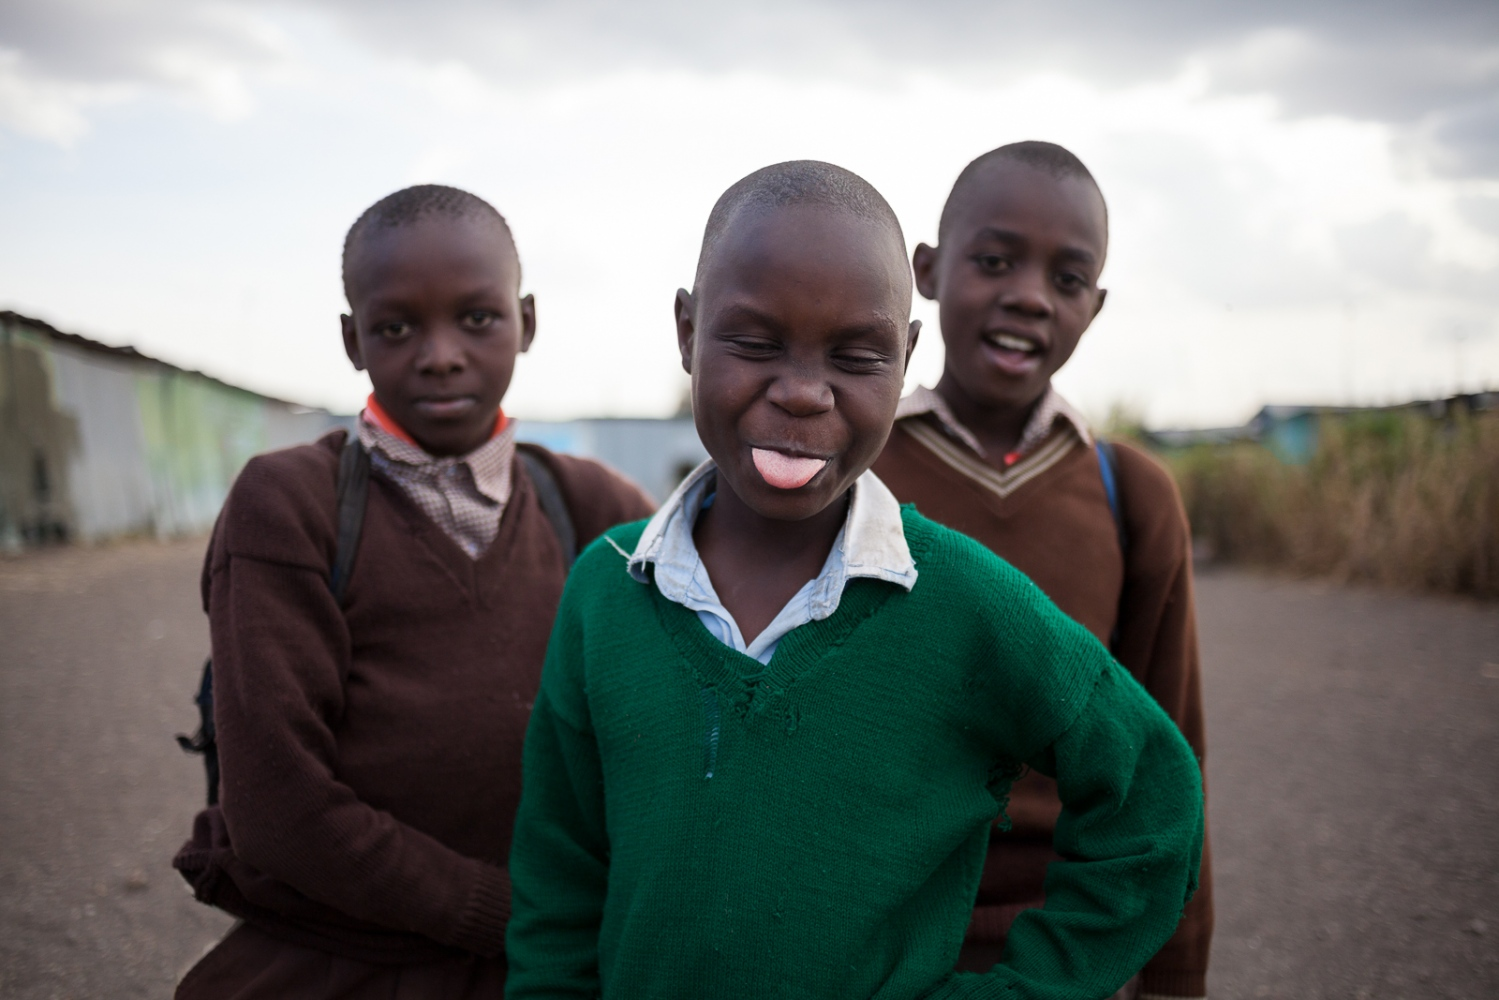 Nairobi, KENYA, October, 2013: School children play during a break at Jobenpha Community school. Some of the ex pupils made it to university, showing the kids that there is a way out of the slums through education.